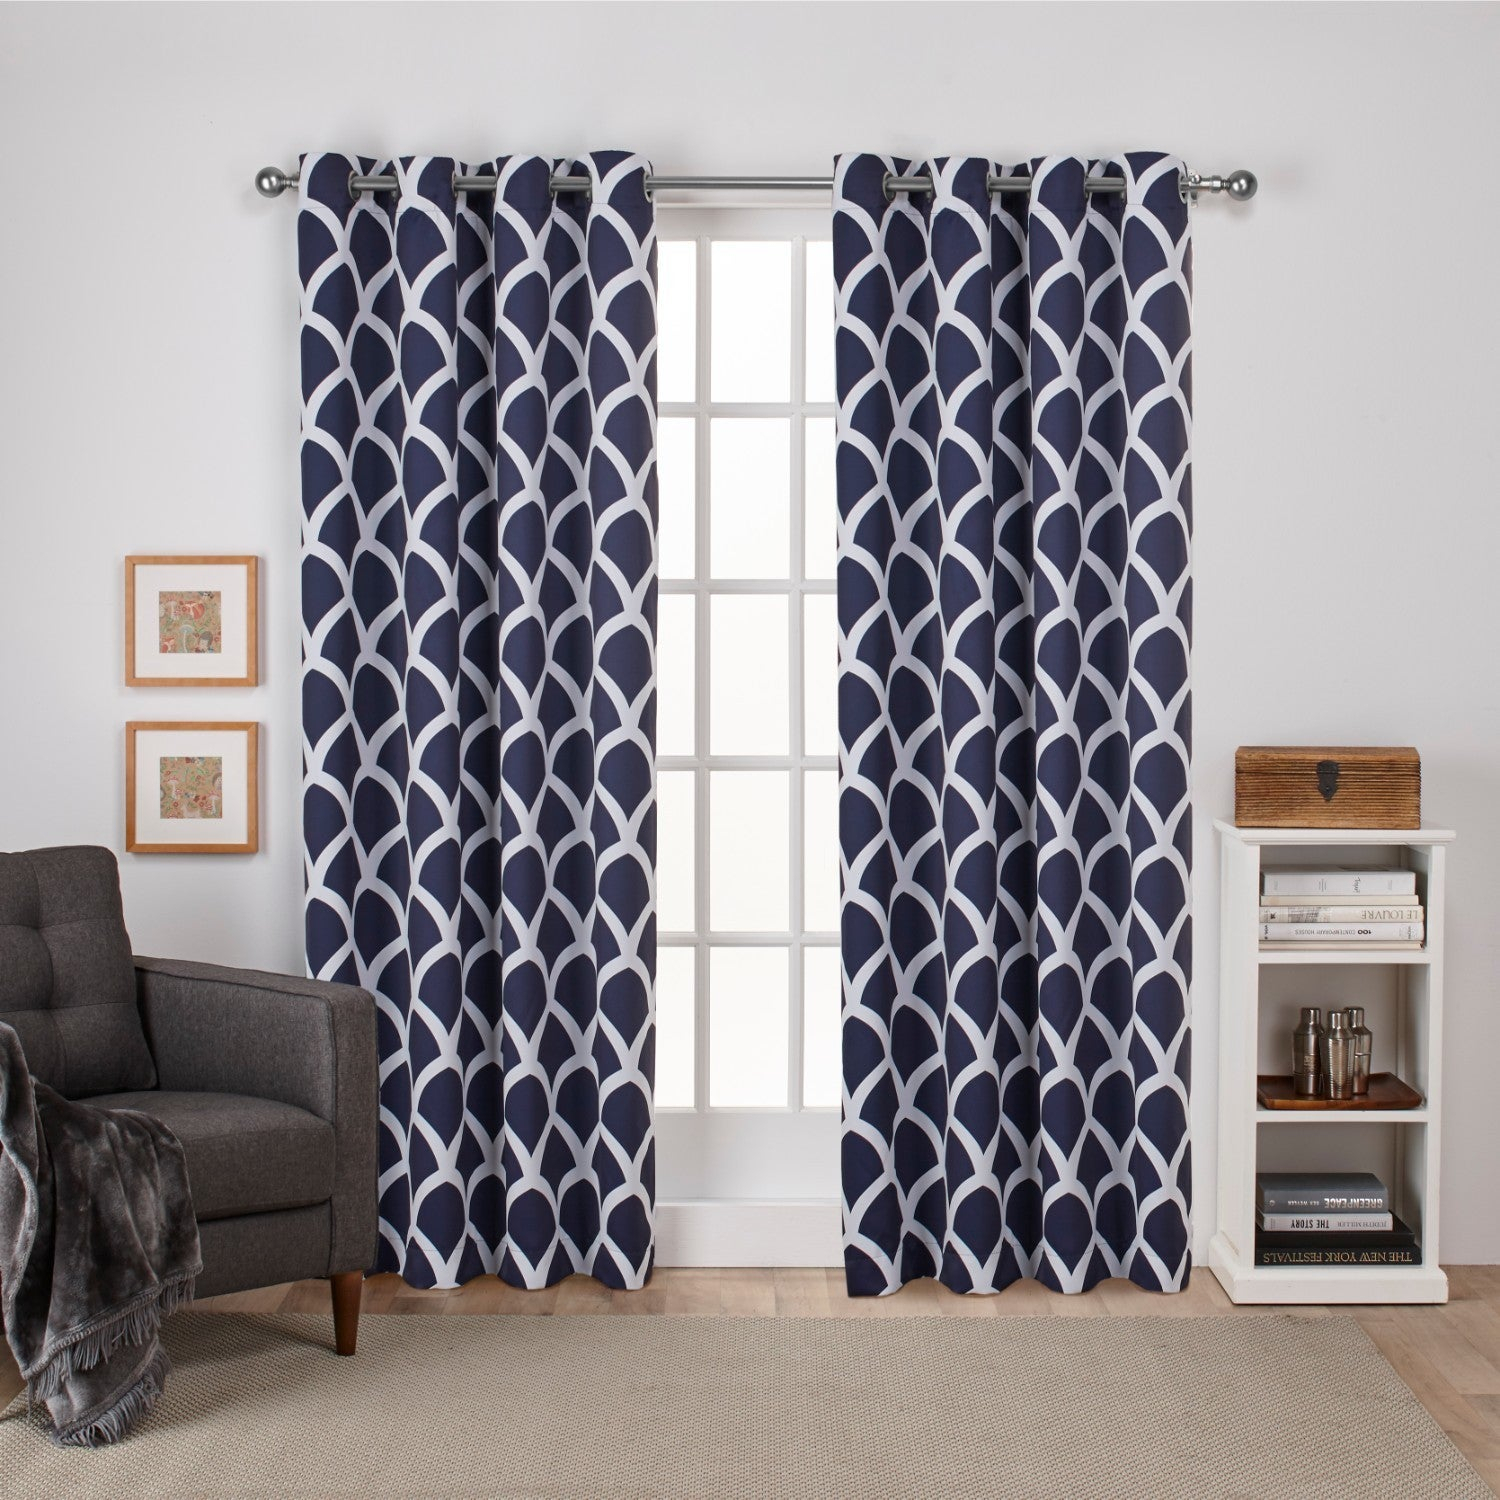 The Curated Nomad Ames Sateen Woven Blackout Grommet Top Curtain Panel Pair With Regard To The Curated Nomad Duane Blackout Curtain Panel Pairs (View 15 of 30)